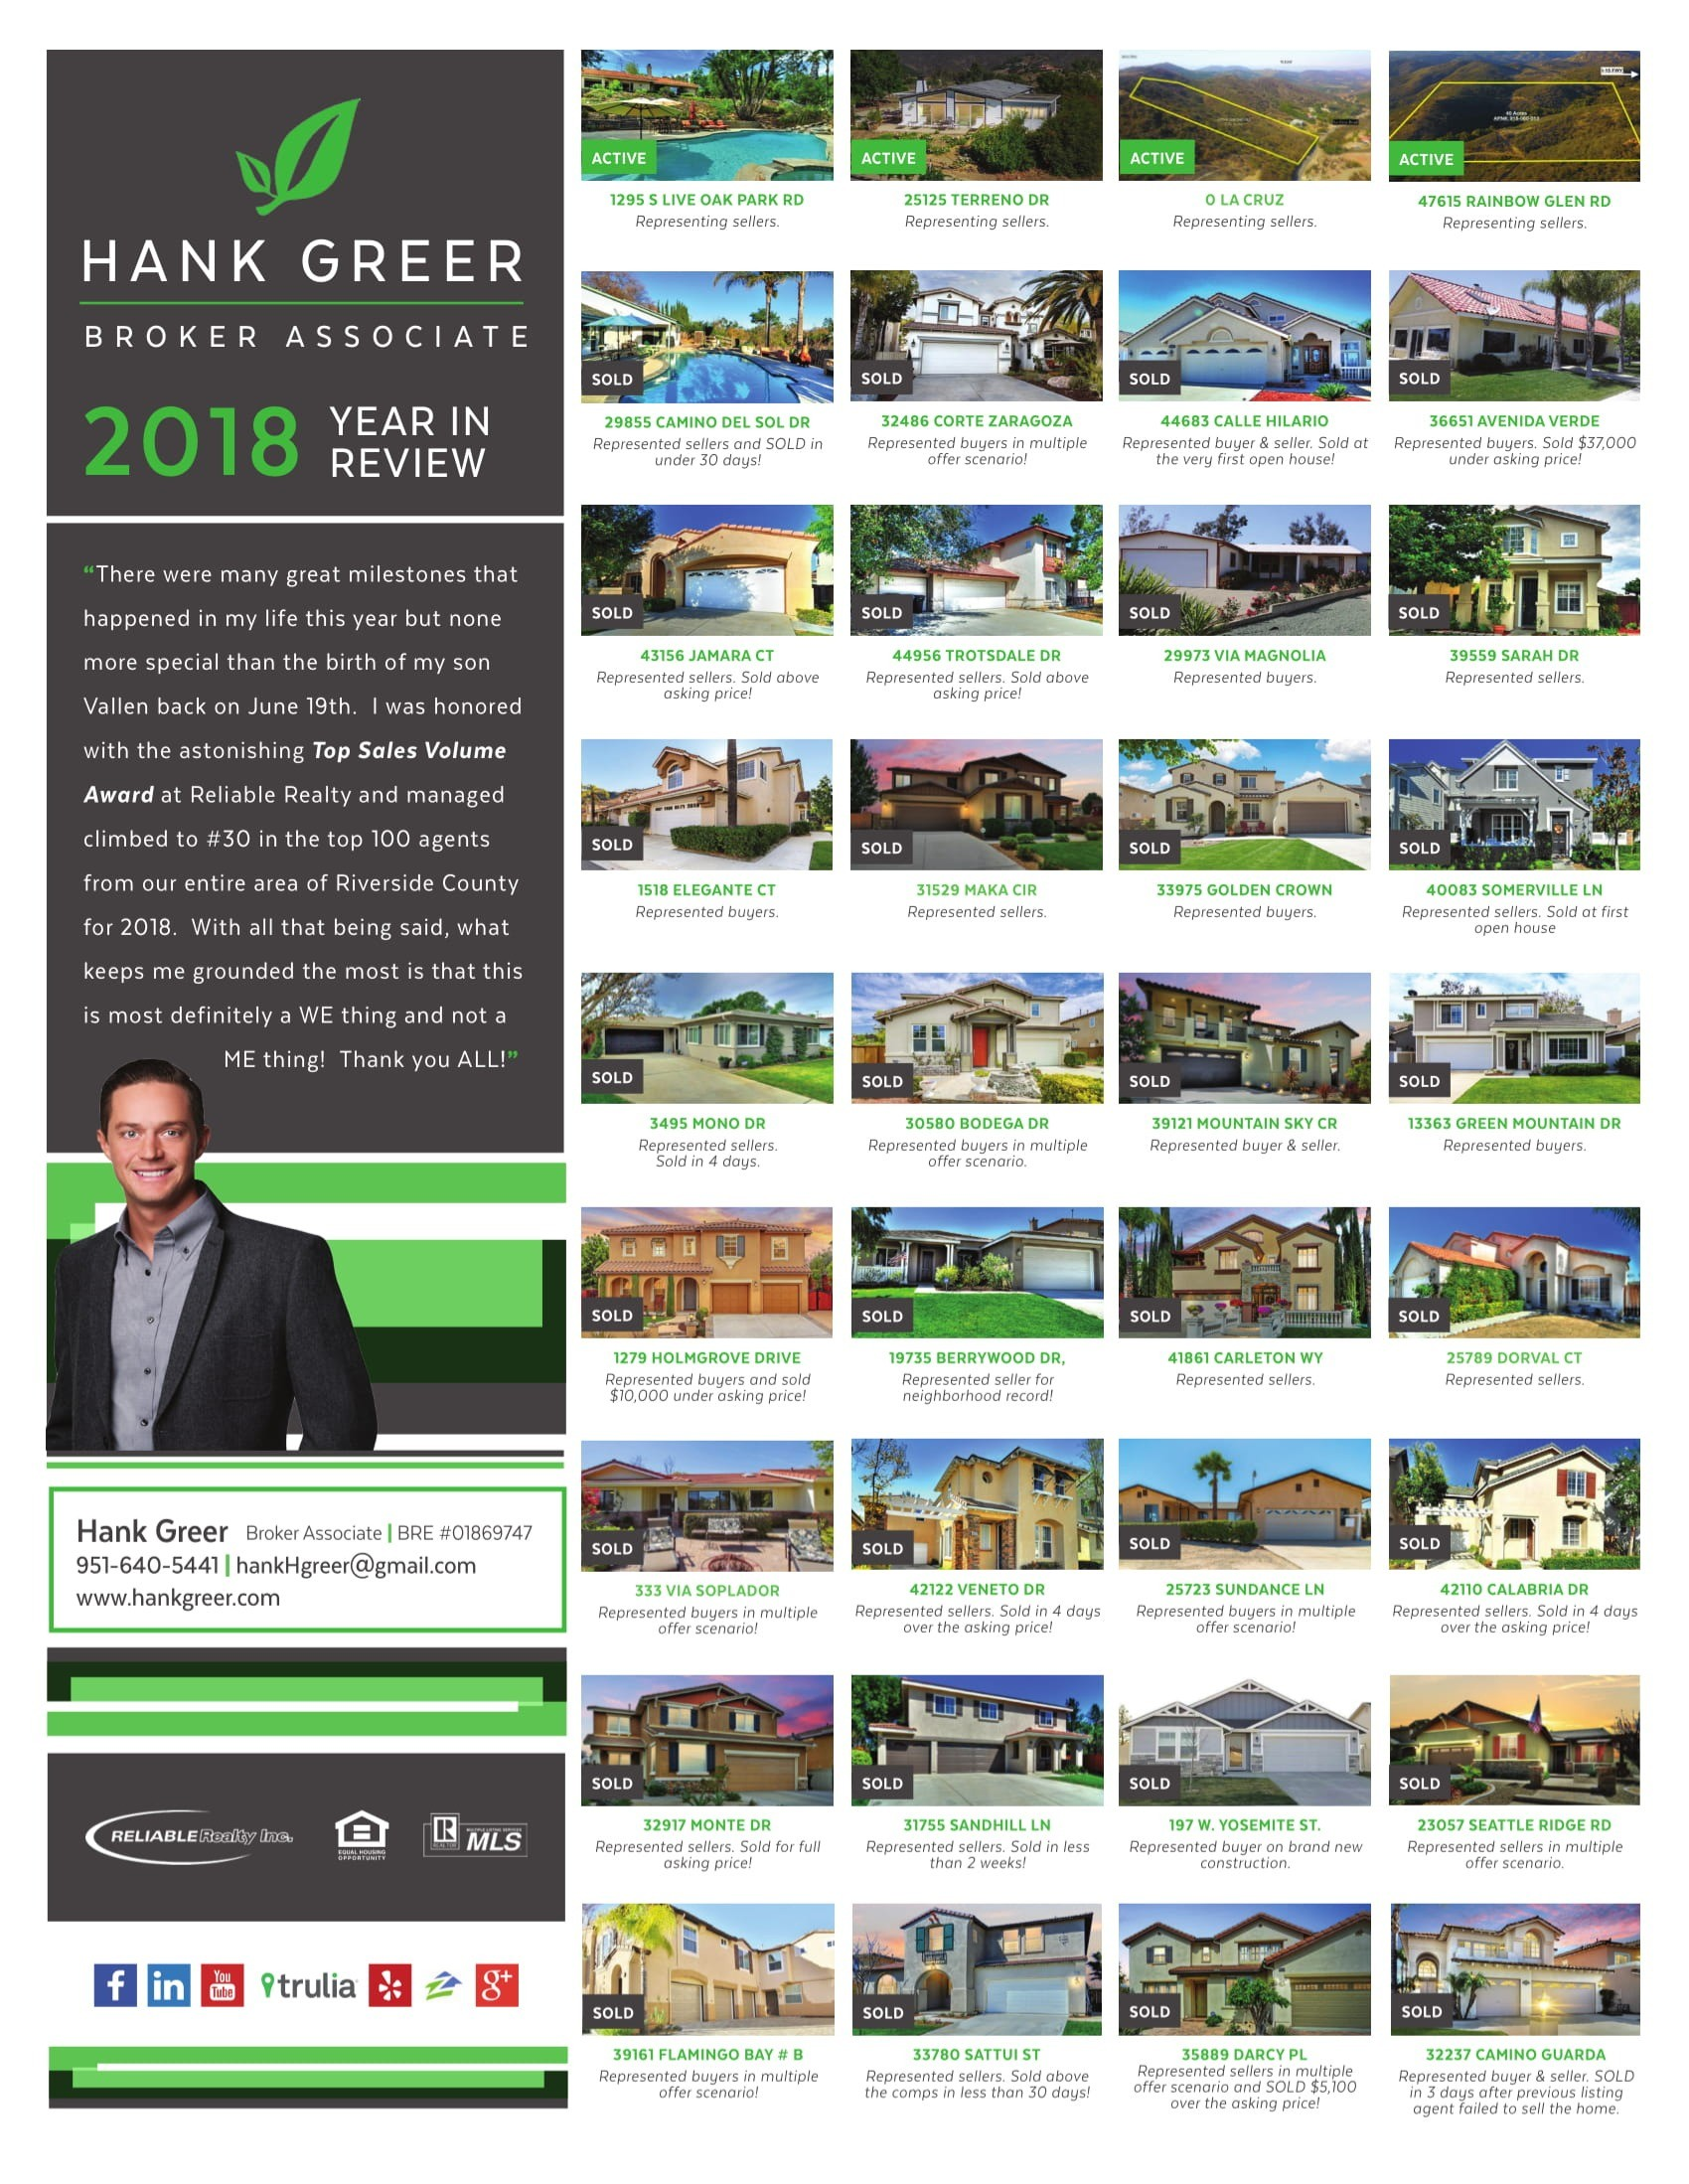 All sold homes by Hank Greer in 2018 in and around the Temecula California area.